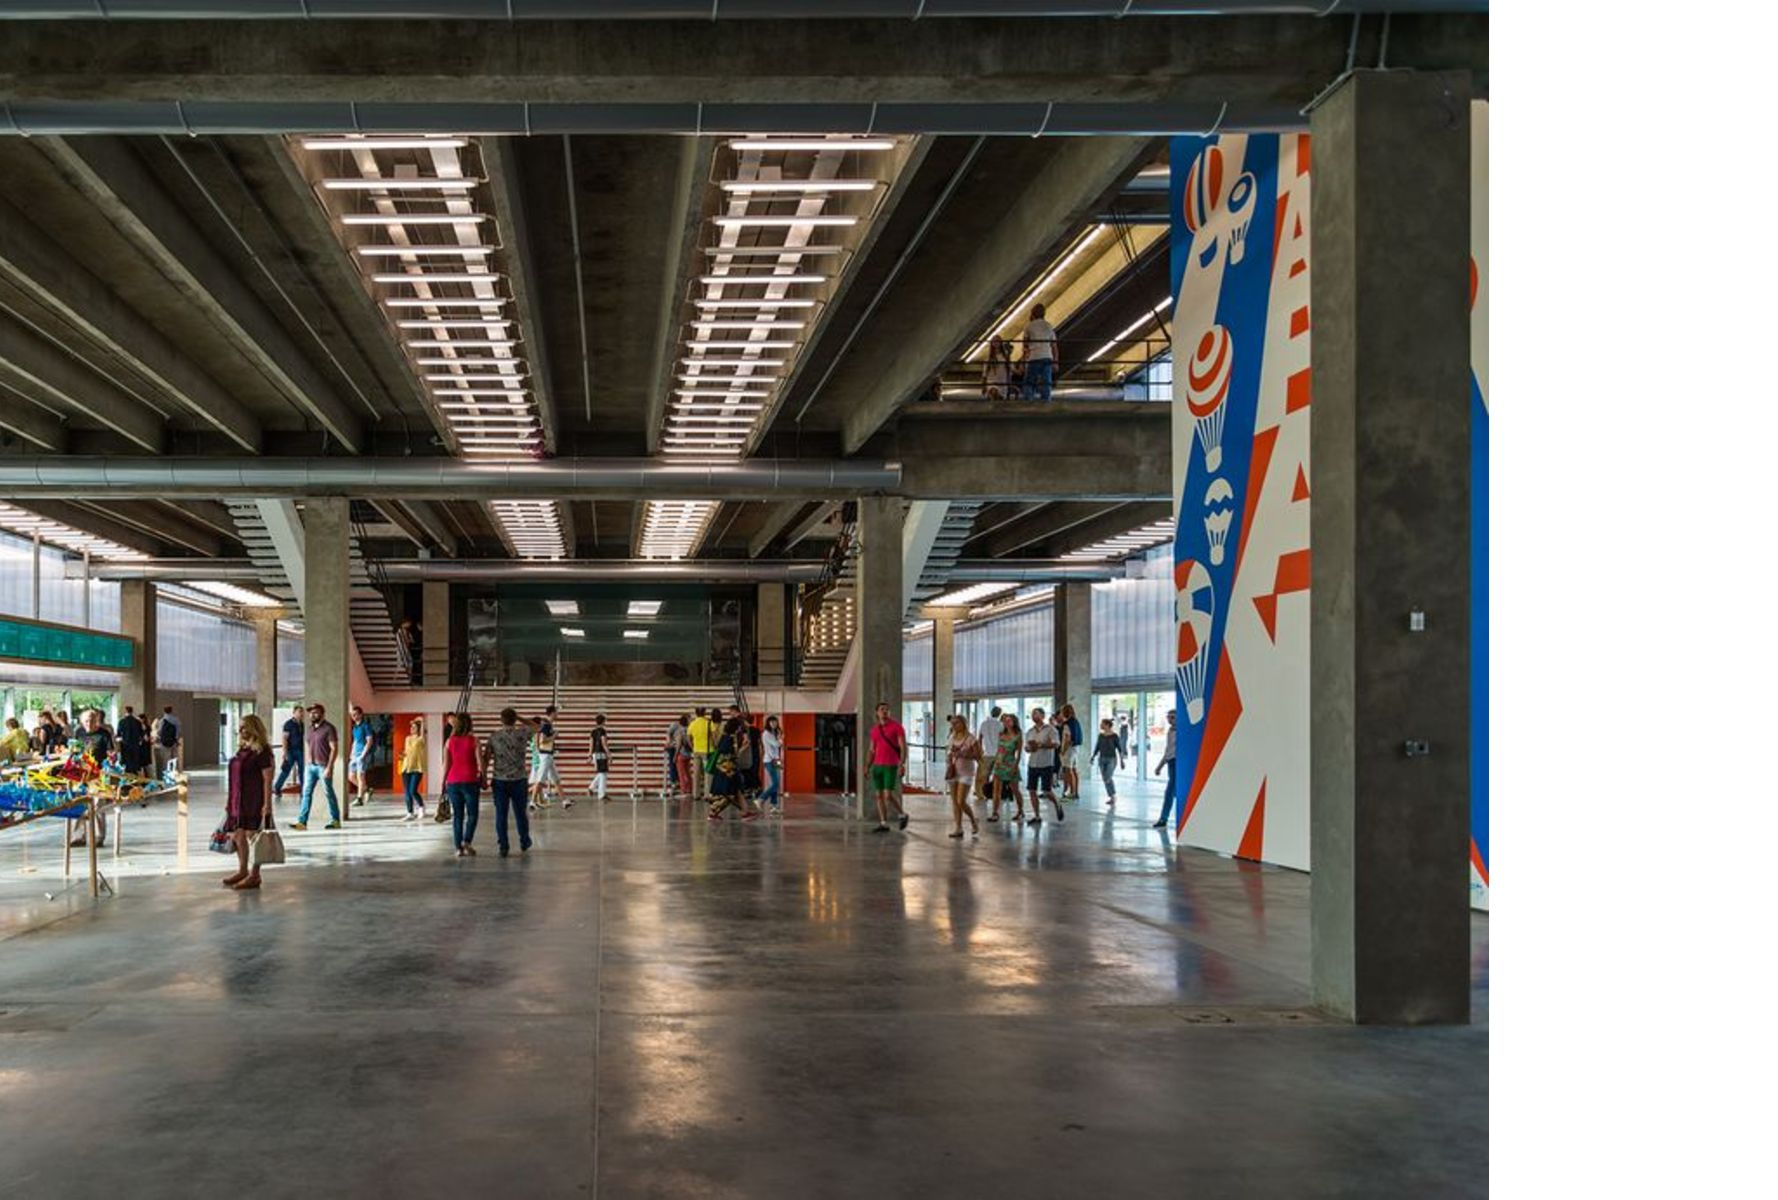 OMA-Rem Koolhaas: Garage Museum of Contemporary Art Mosca